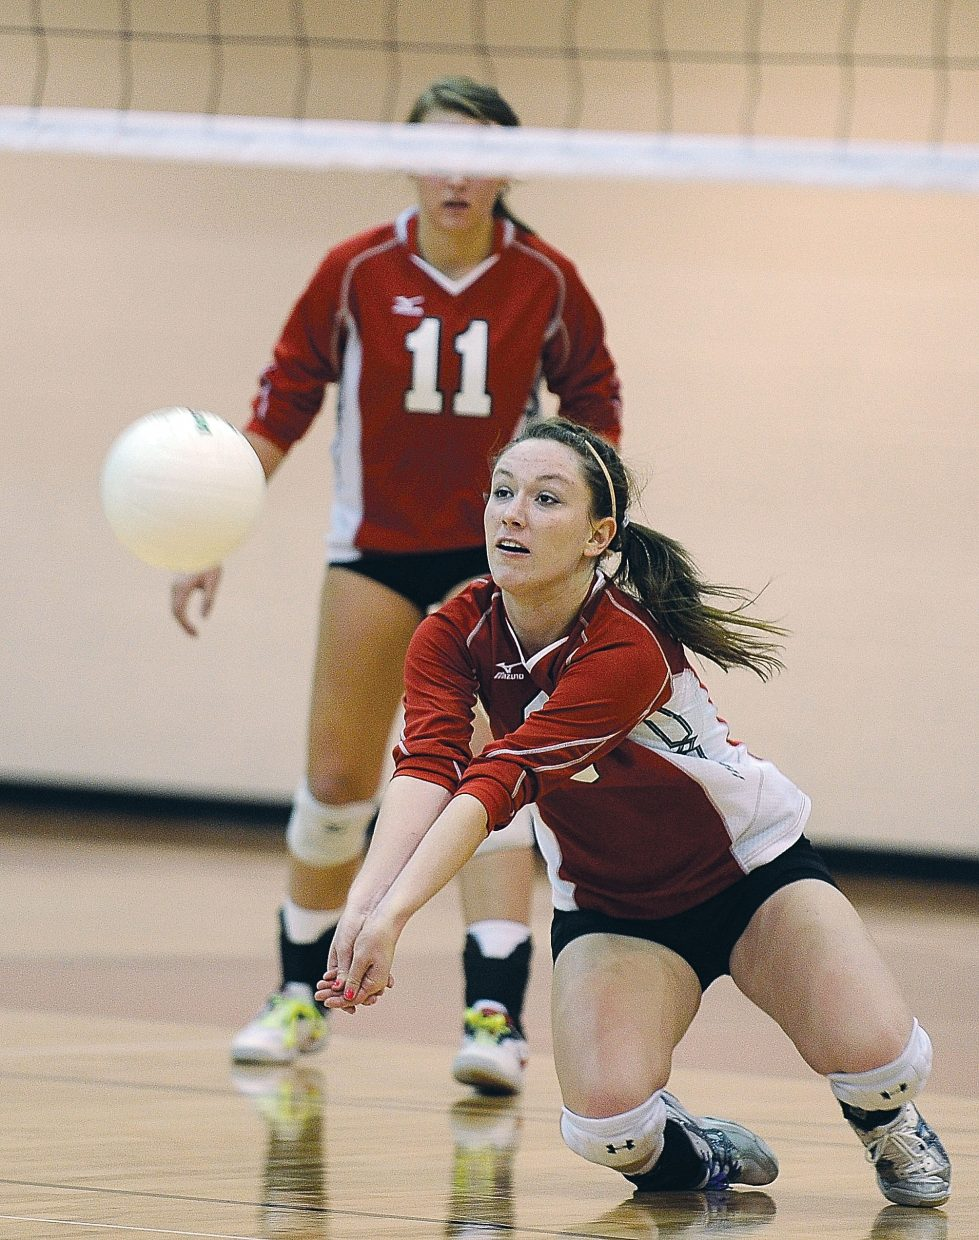 Steamboat Springs Meghan Rabbitt digs a ball during Friday night's homecoming match against Delta.